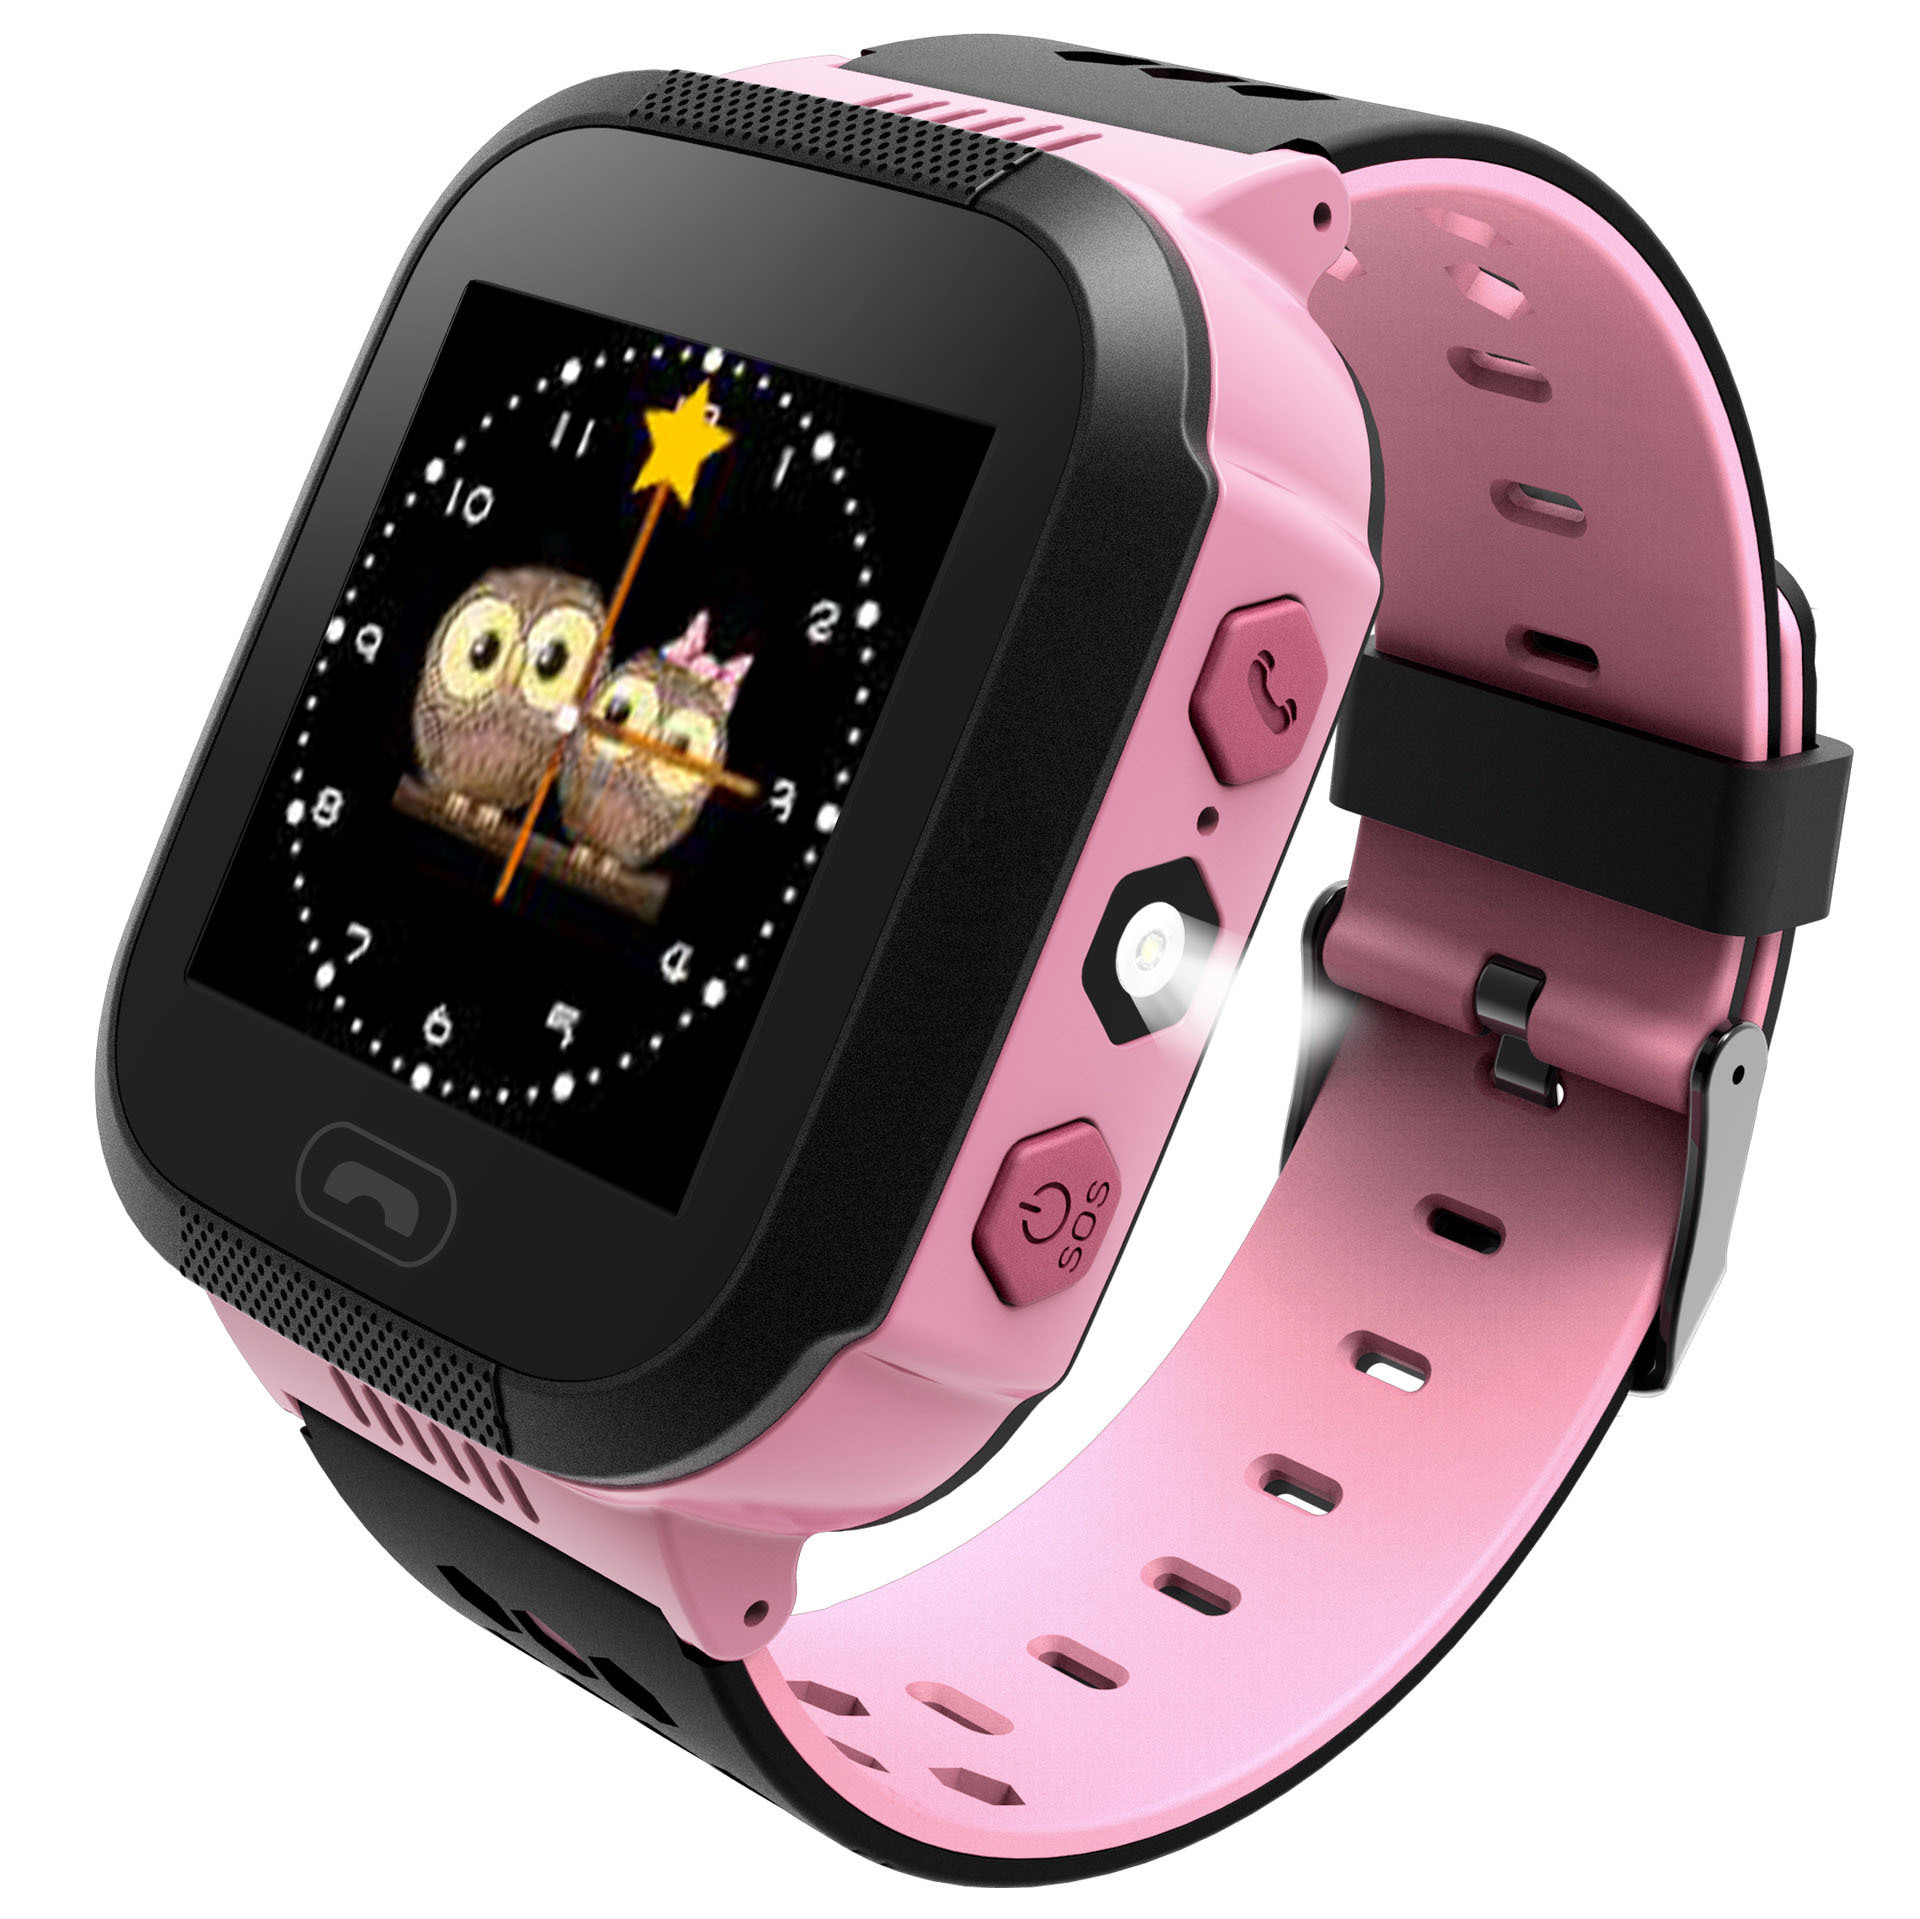 BANGWEI Kids Watch For Sim Card Children's Watch With Bluetooth HD Camera LBS Tracker SOS Call Security Warning Kid Smart Watch